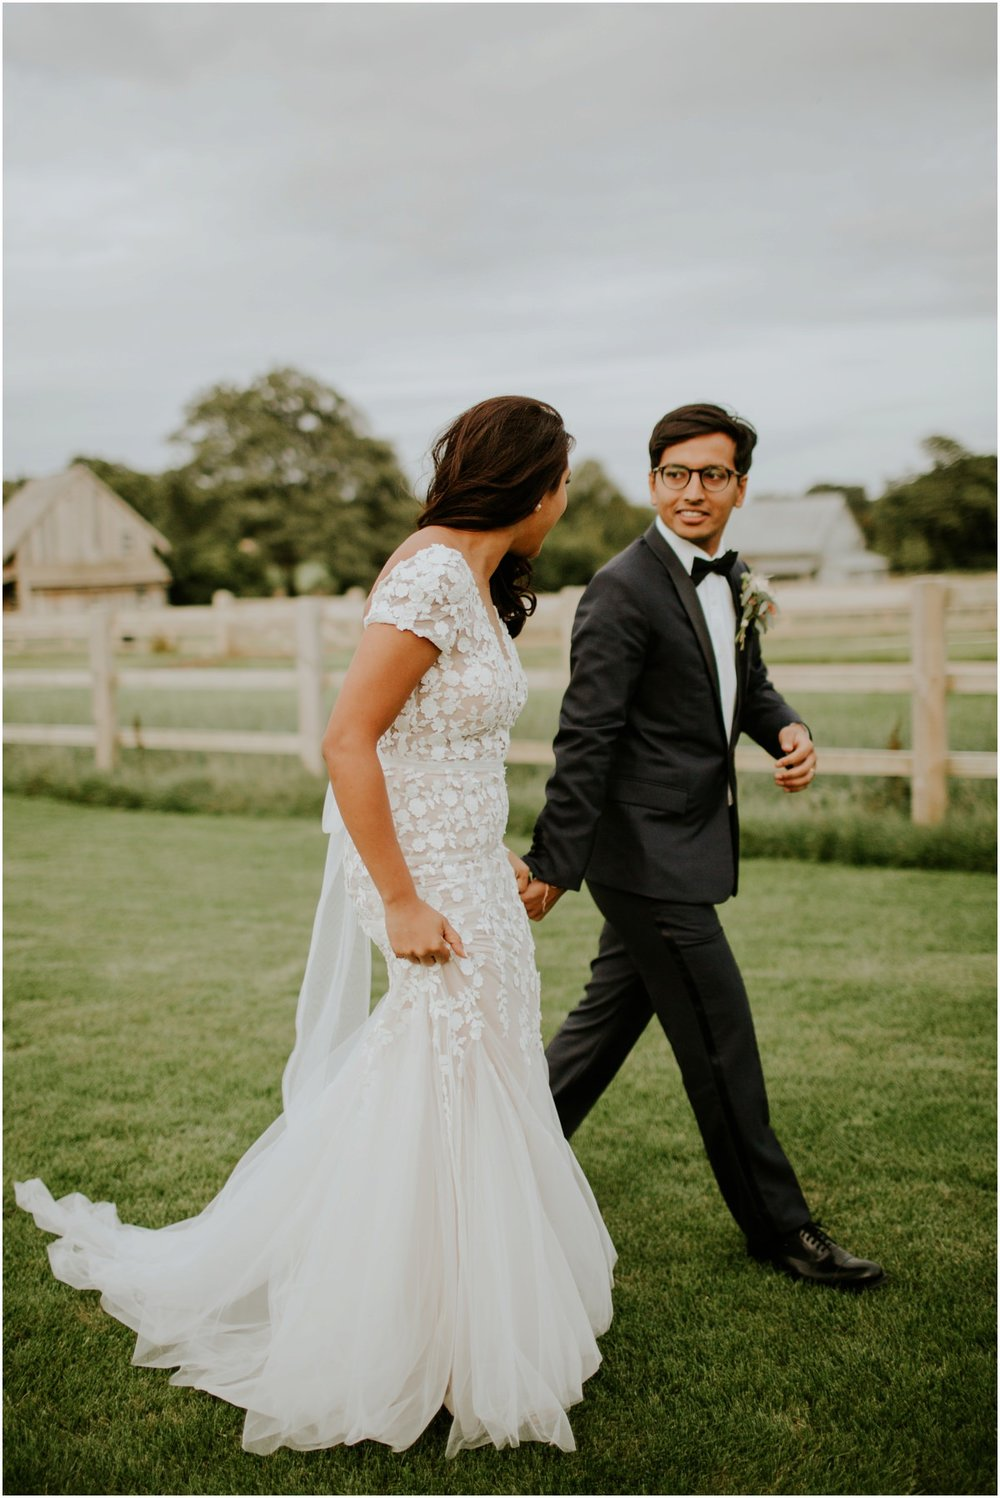 sohofarmhouse wedding86.jpg